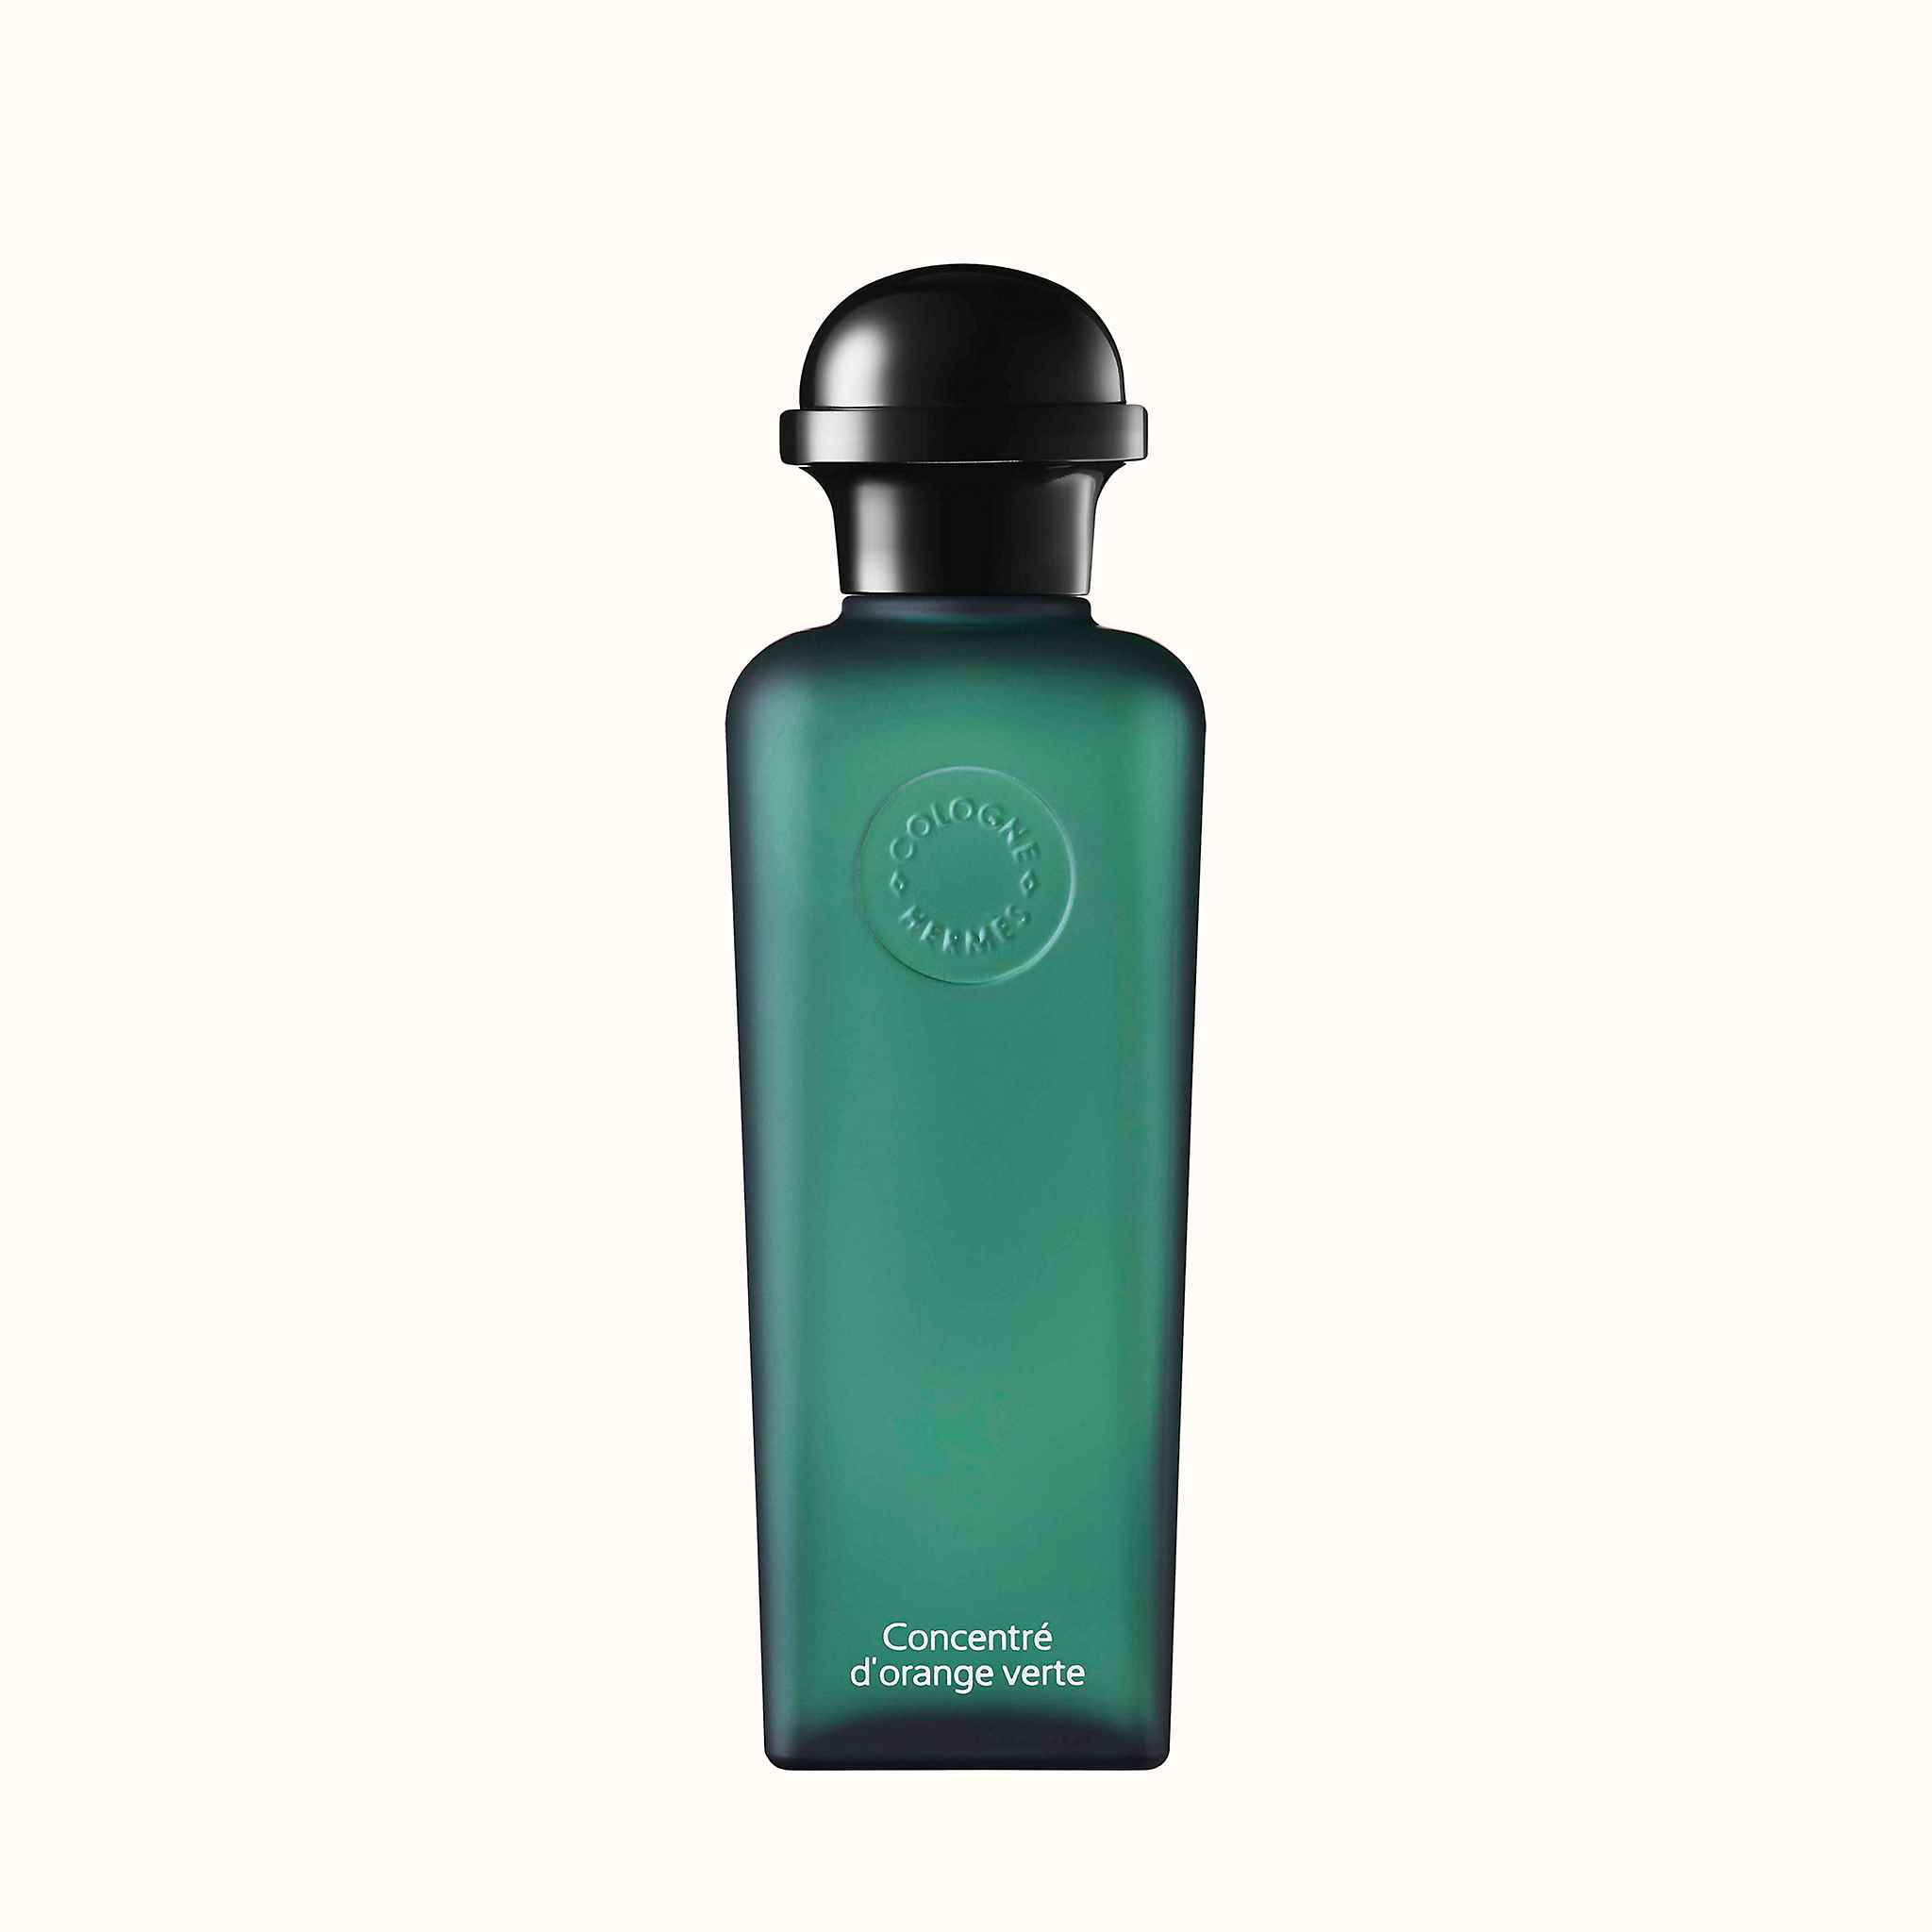 895092f5eac Concentré d orange verte Eau de toilette